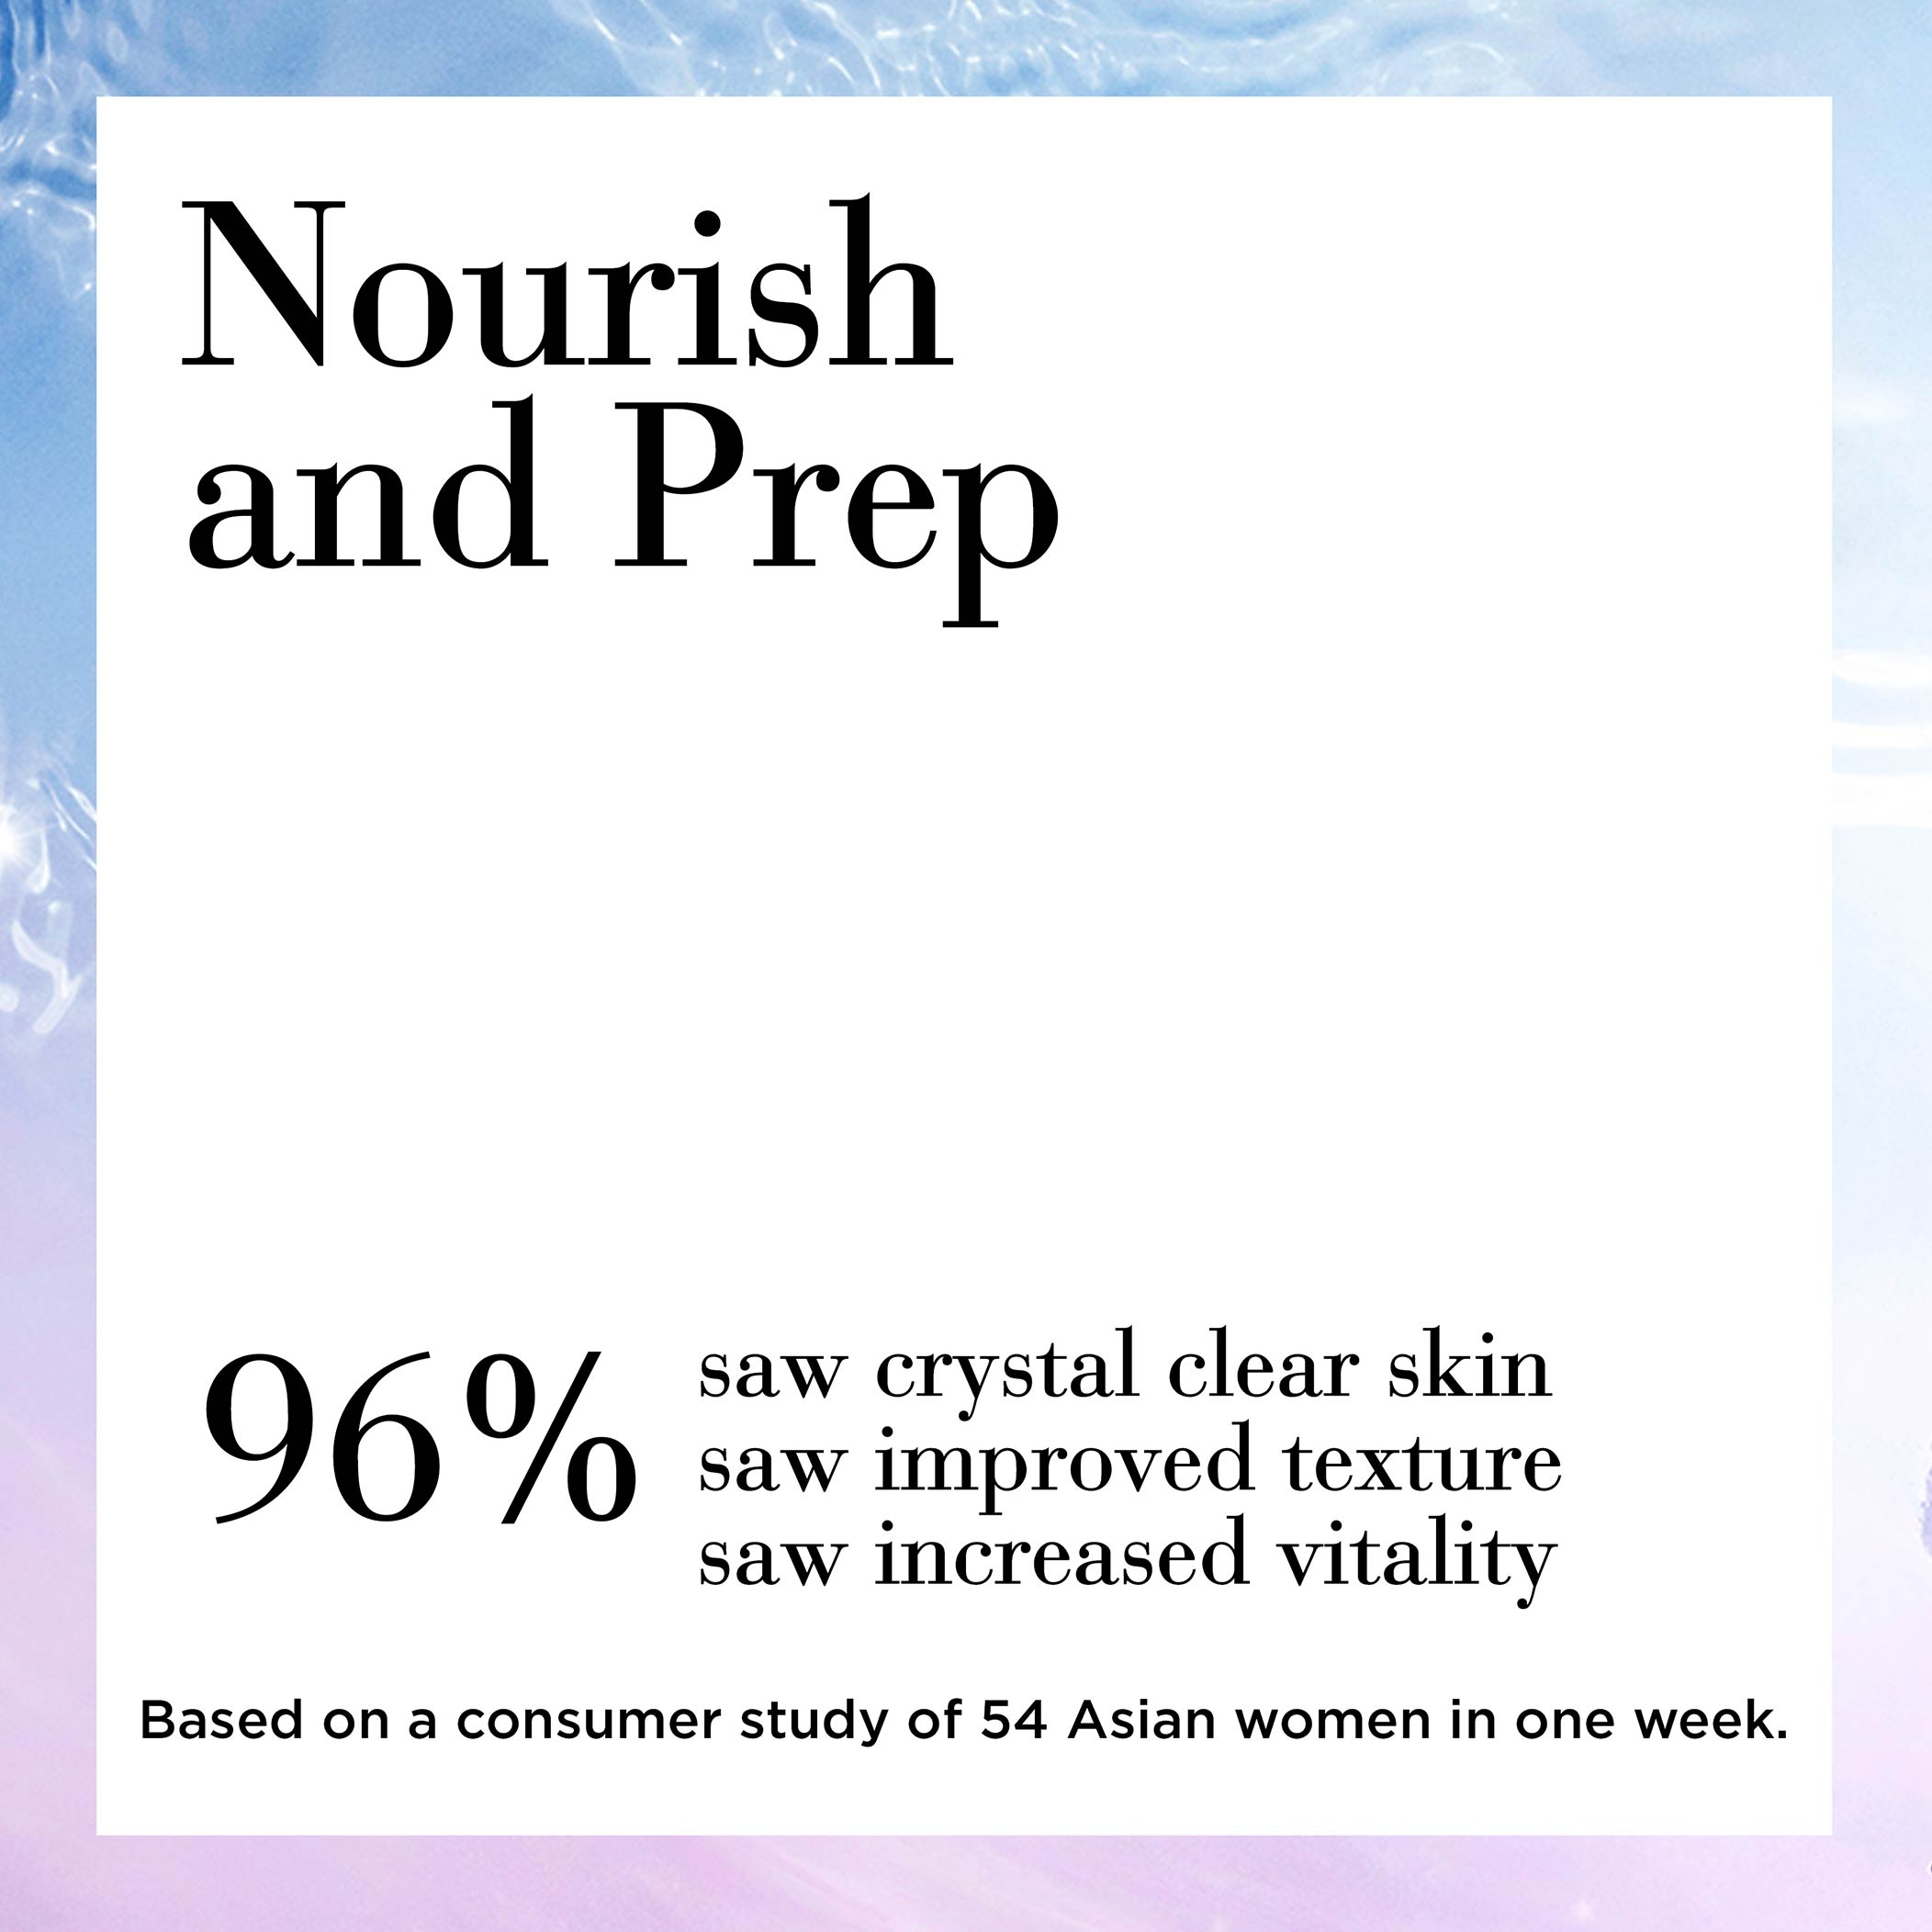 96% saw crystal clear skin, saw improved texture and saw increased vitality based on a consumer study of 54 Asian women in one week.